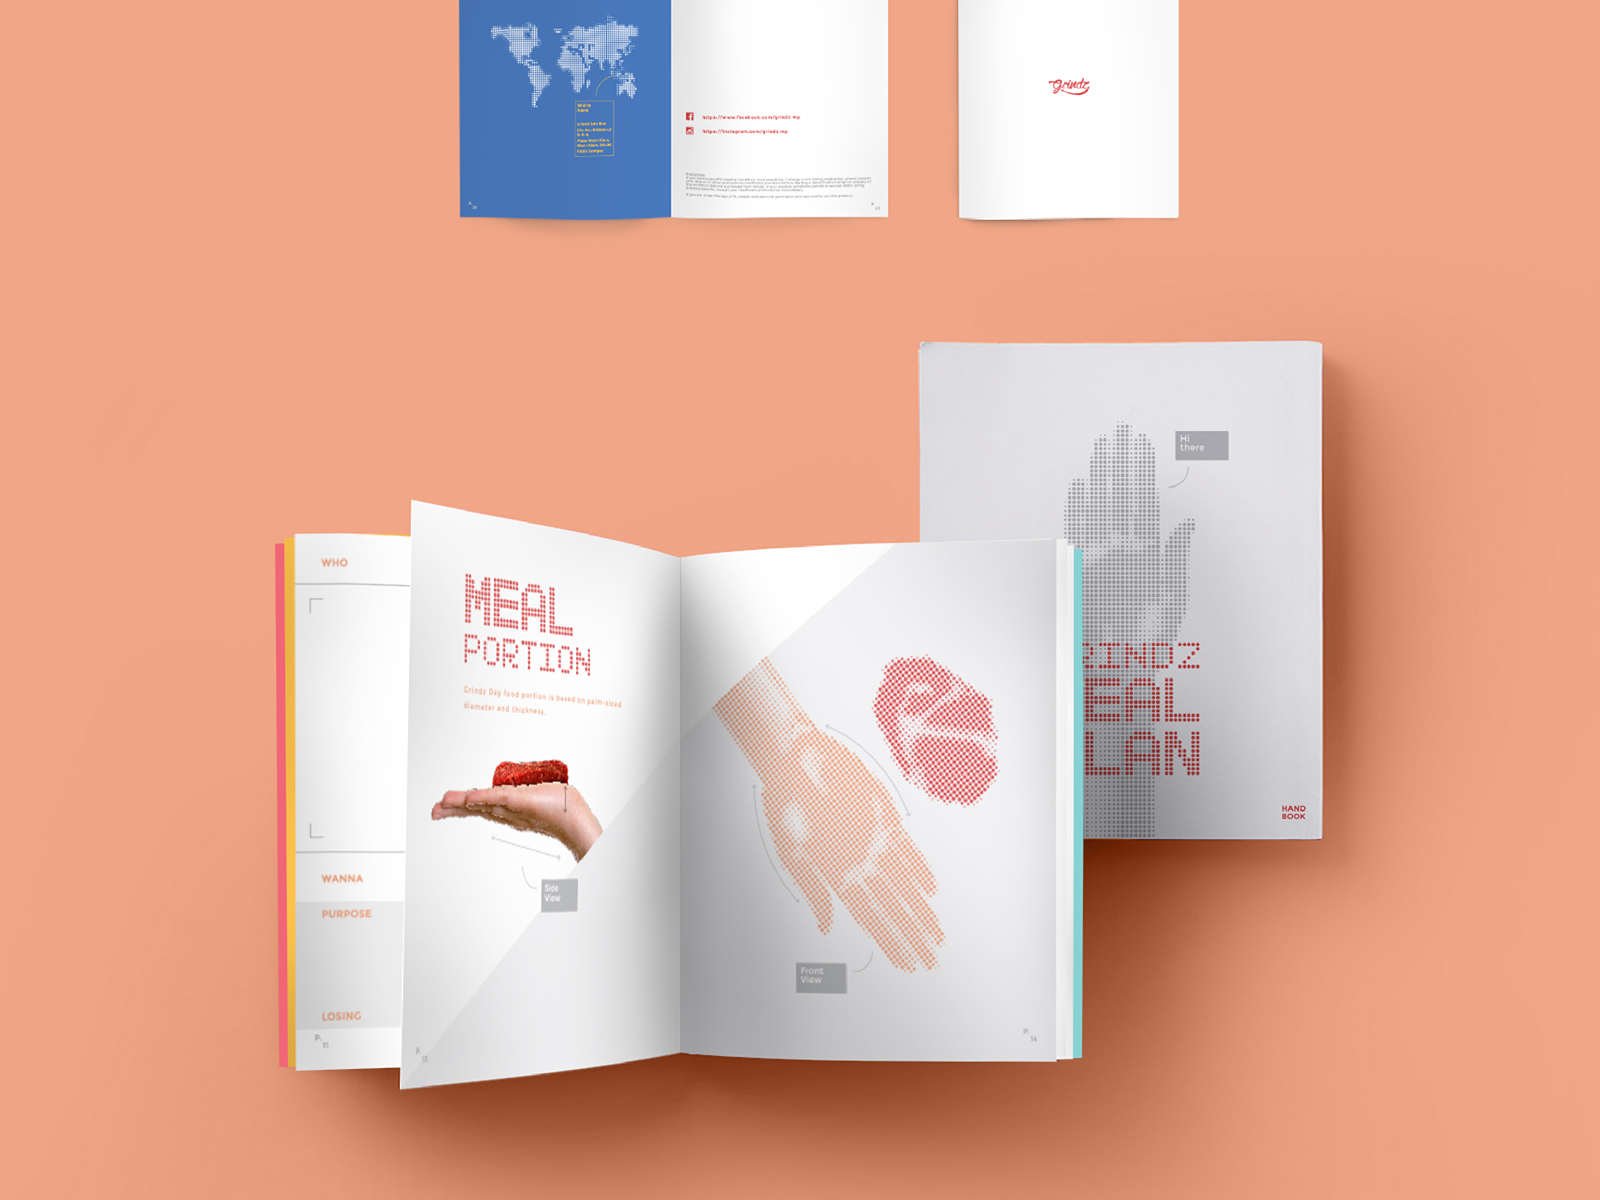 Grindz supplement brand collaterals design of guidebook inner pages of information of nutrition and weight loss alongside schedule for food consumption